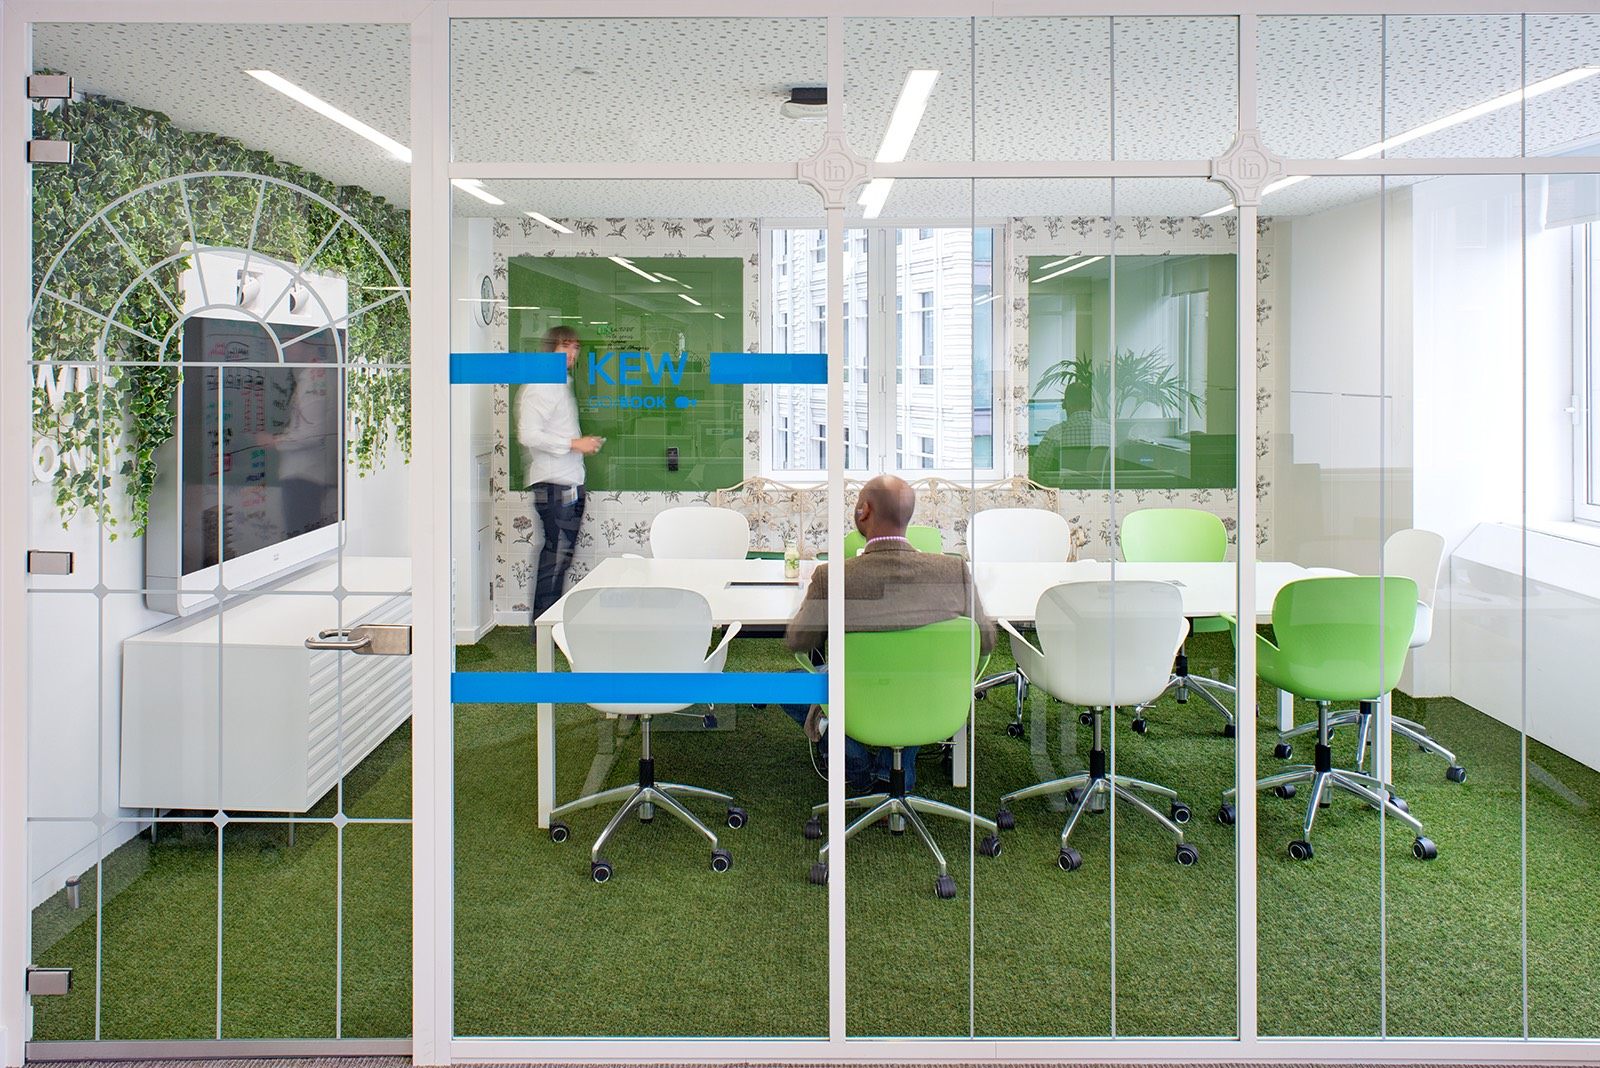 Meeting room at Linkedin's office in London